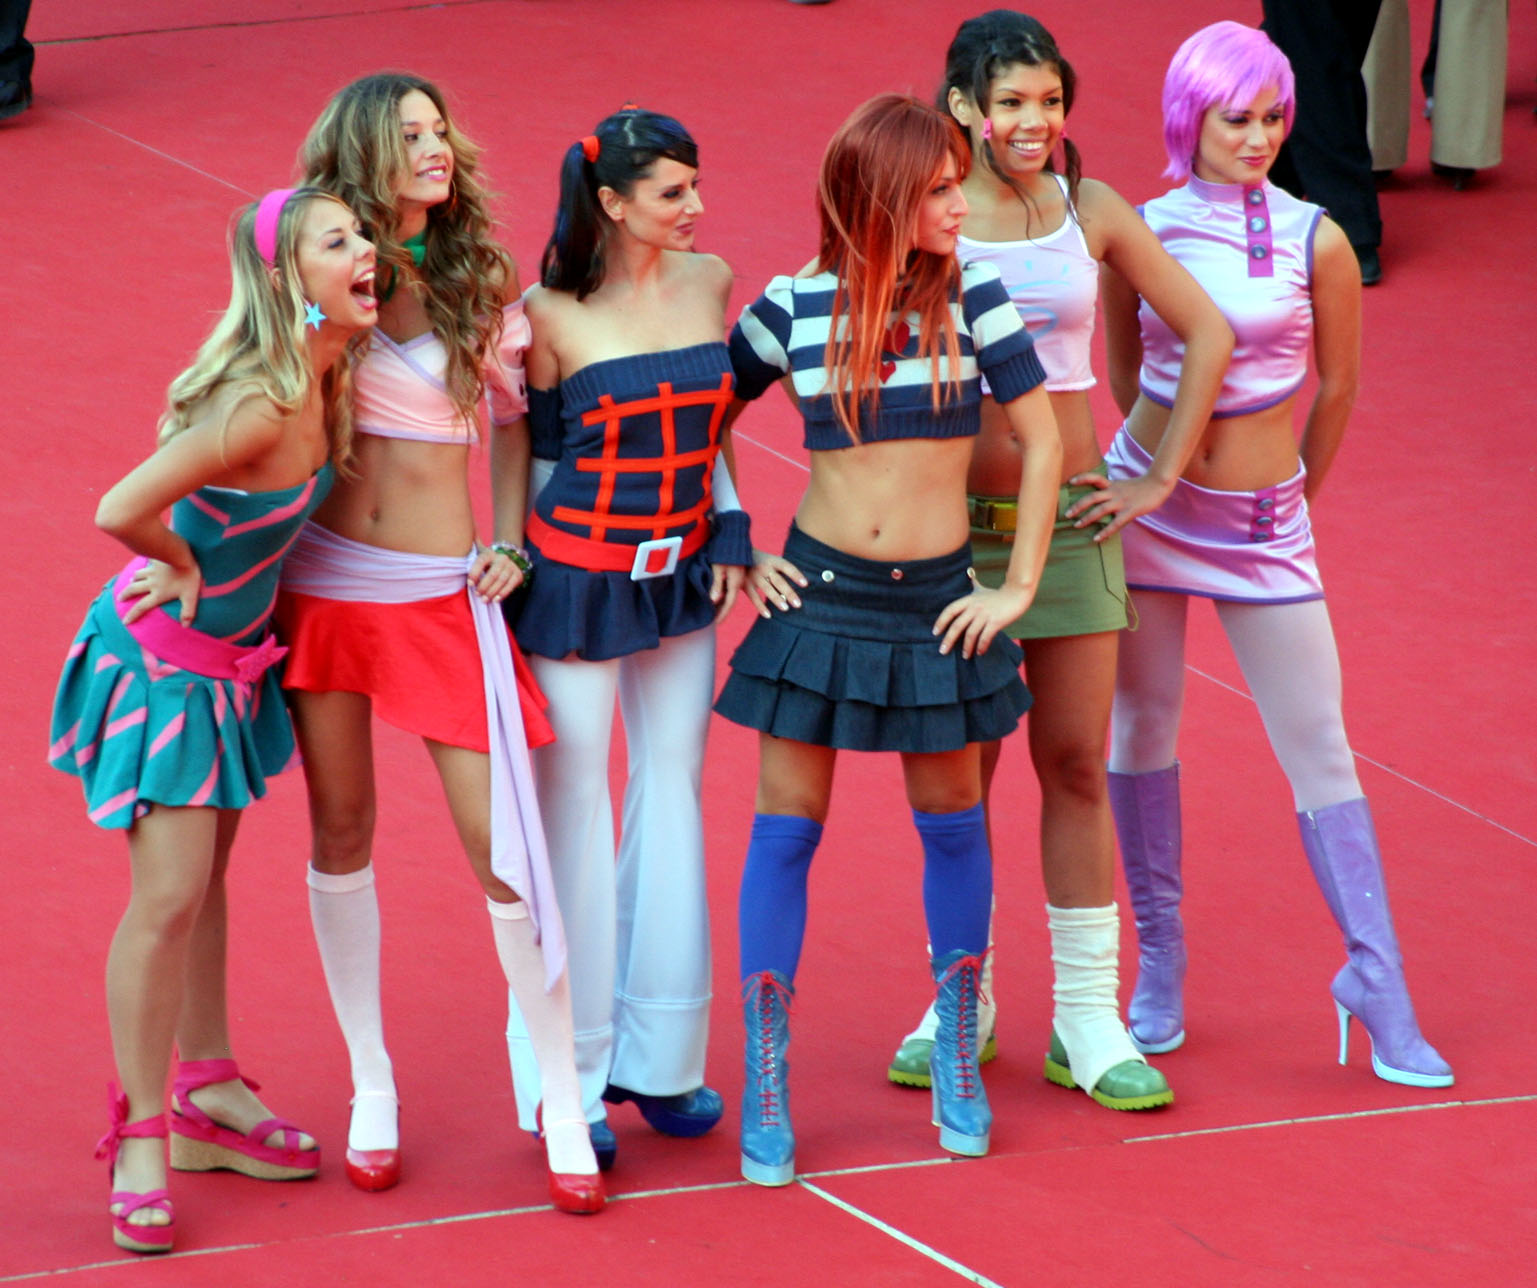 Dancers portraying the winx club attend the rome film fest in italy